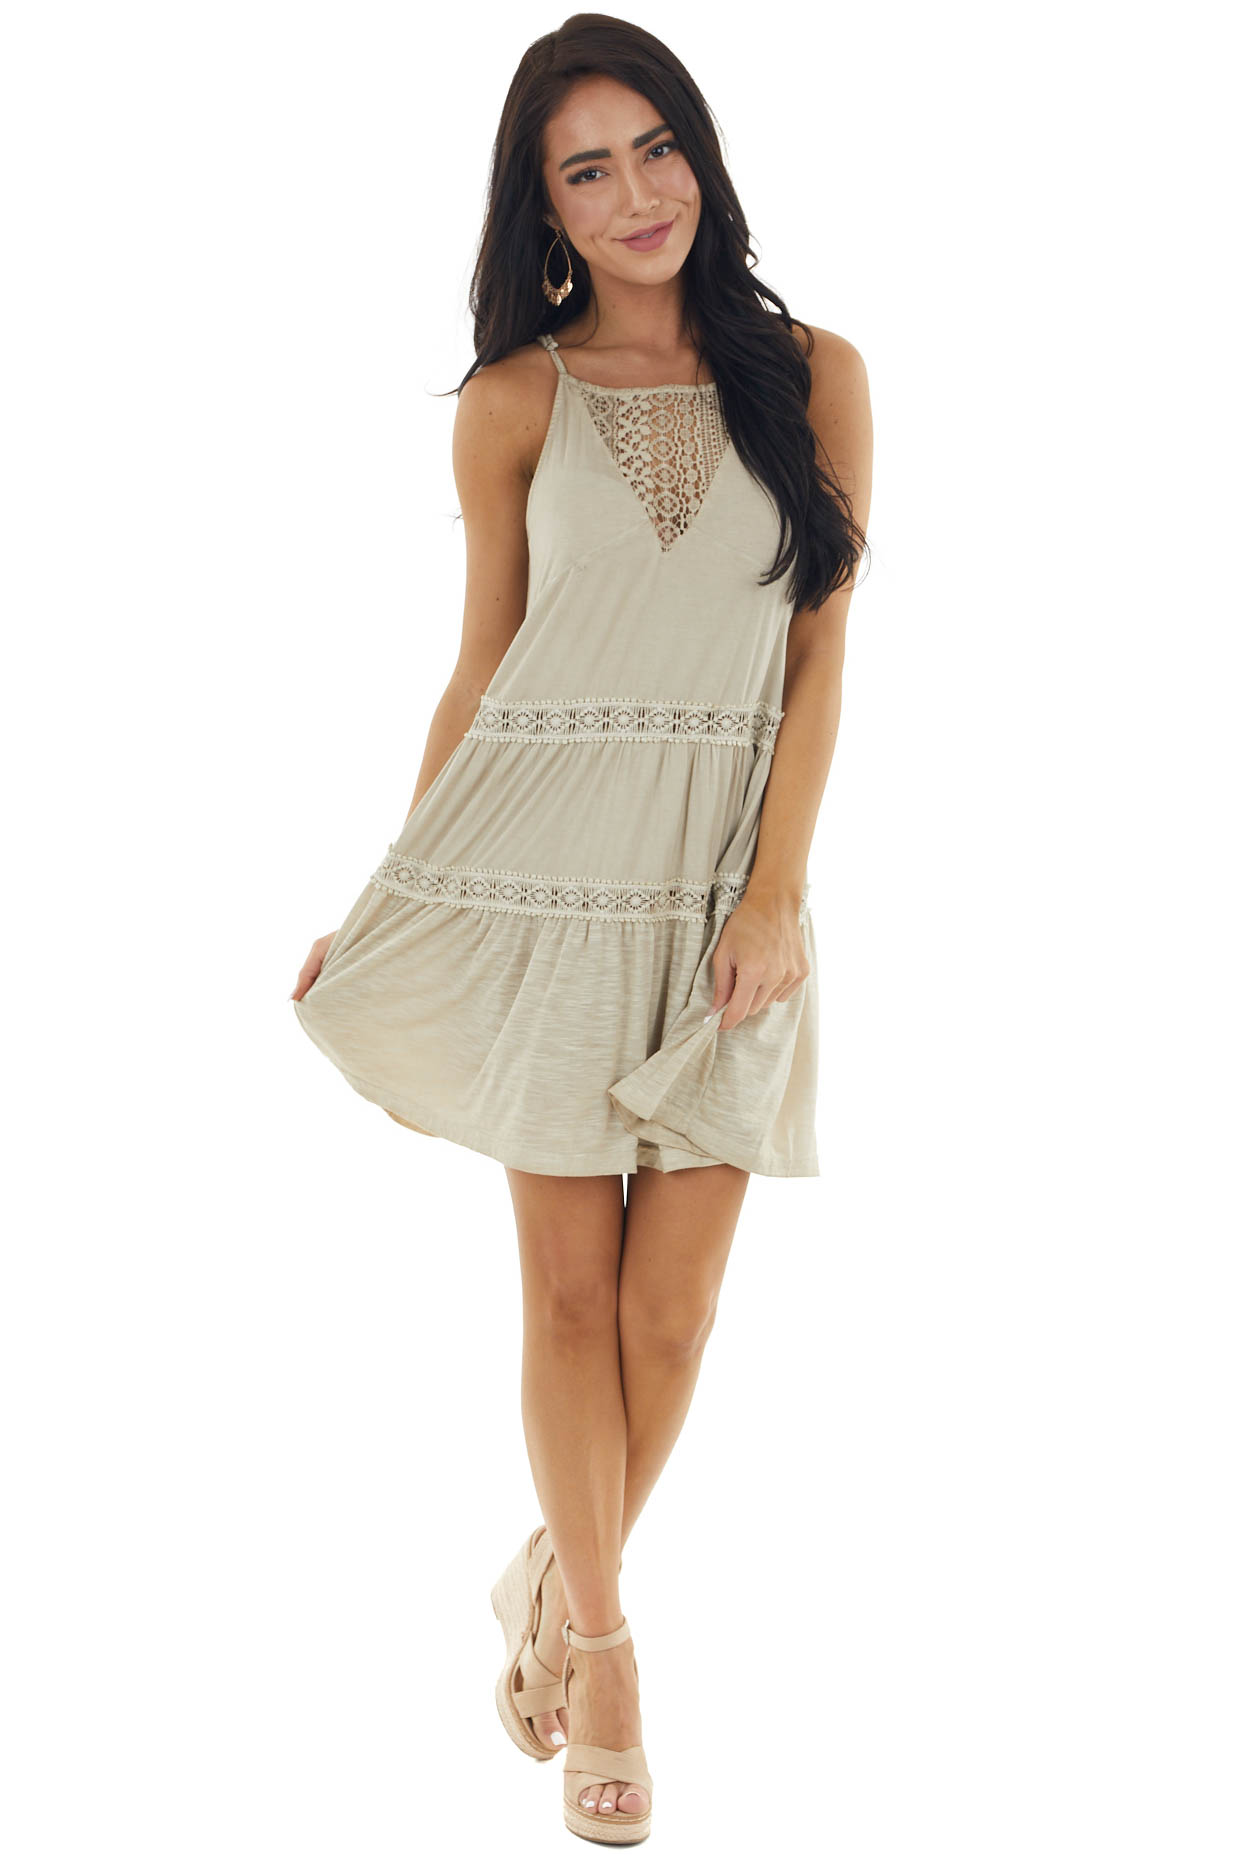 Oatmeal Sleeveless Tiered Mini Dress with Lace